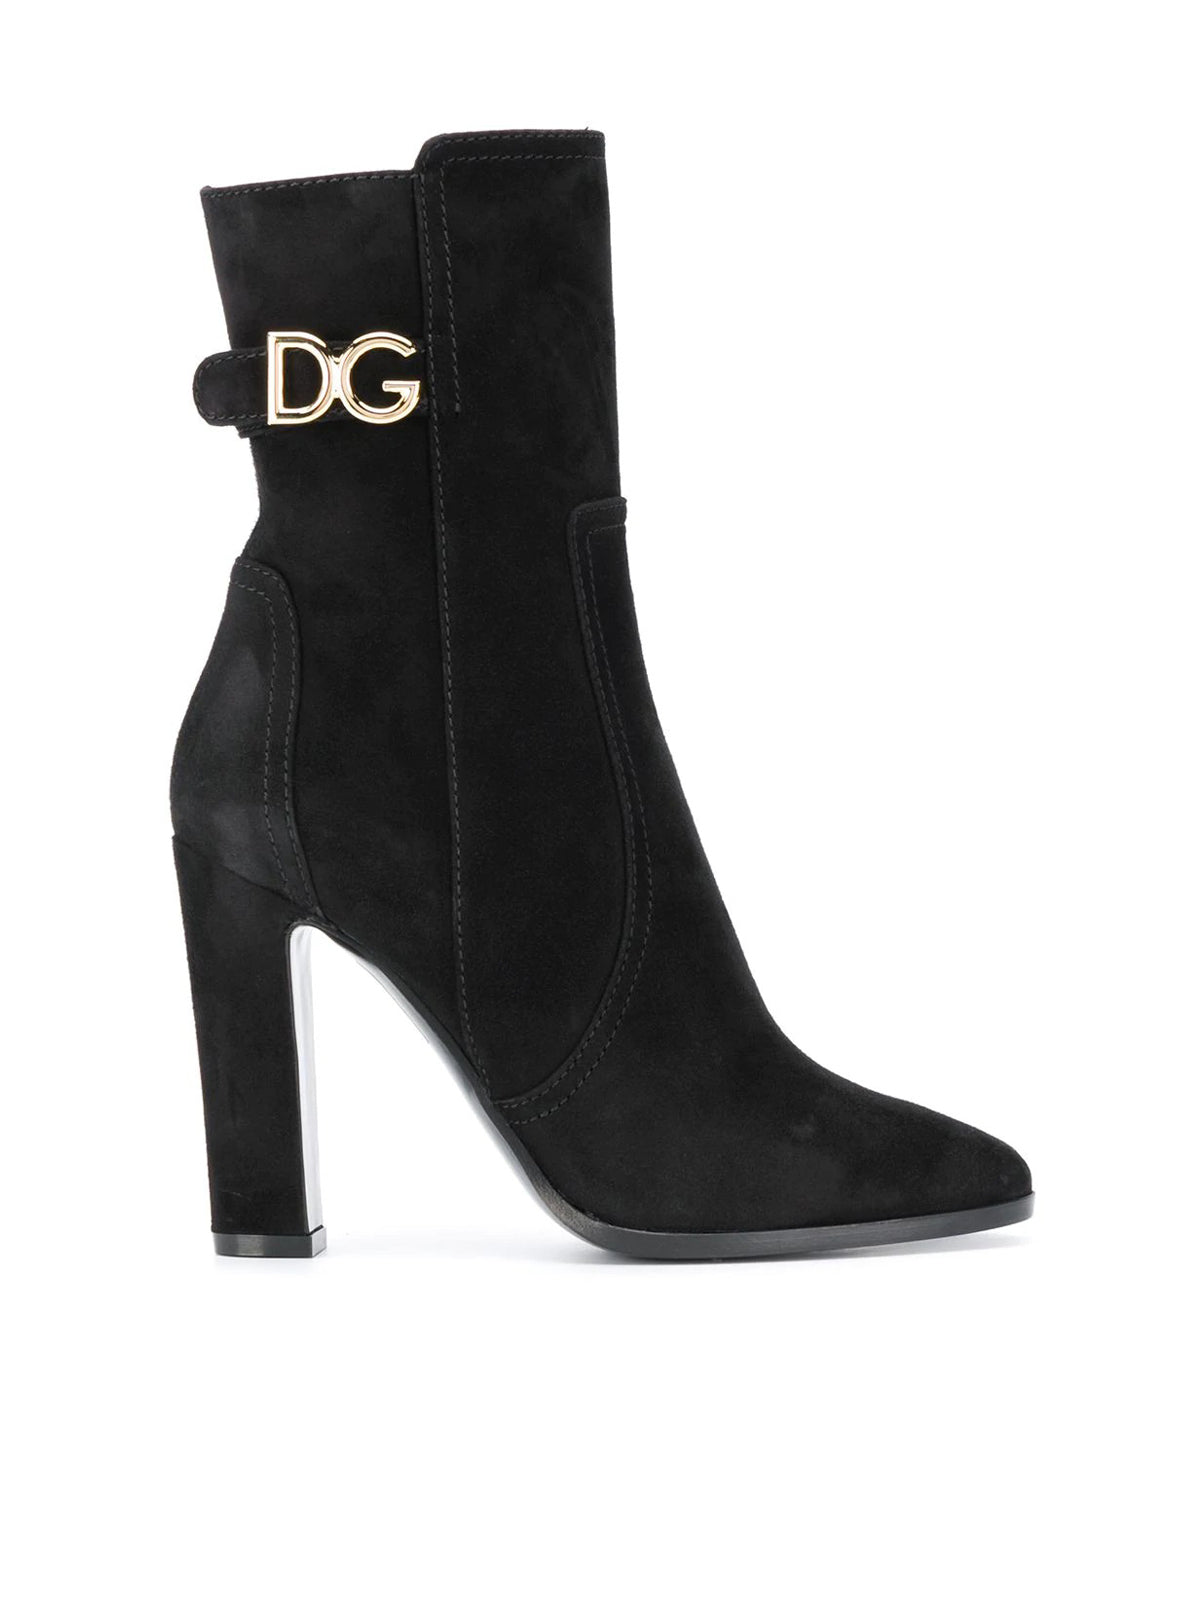 DG-logo leather boots